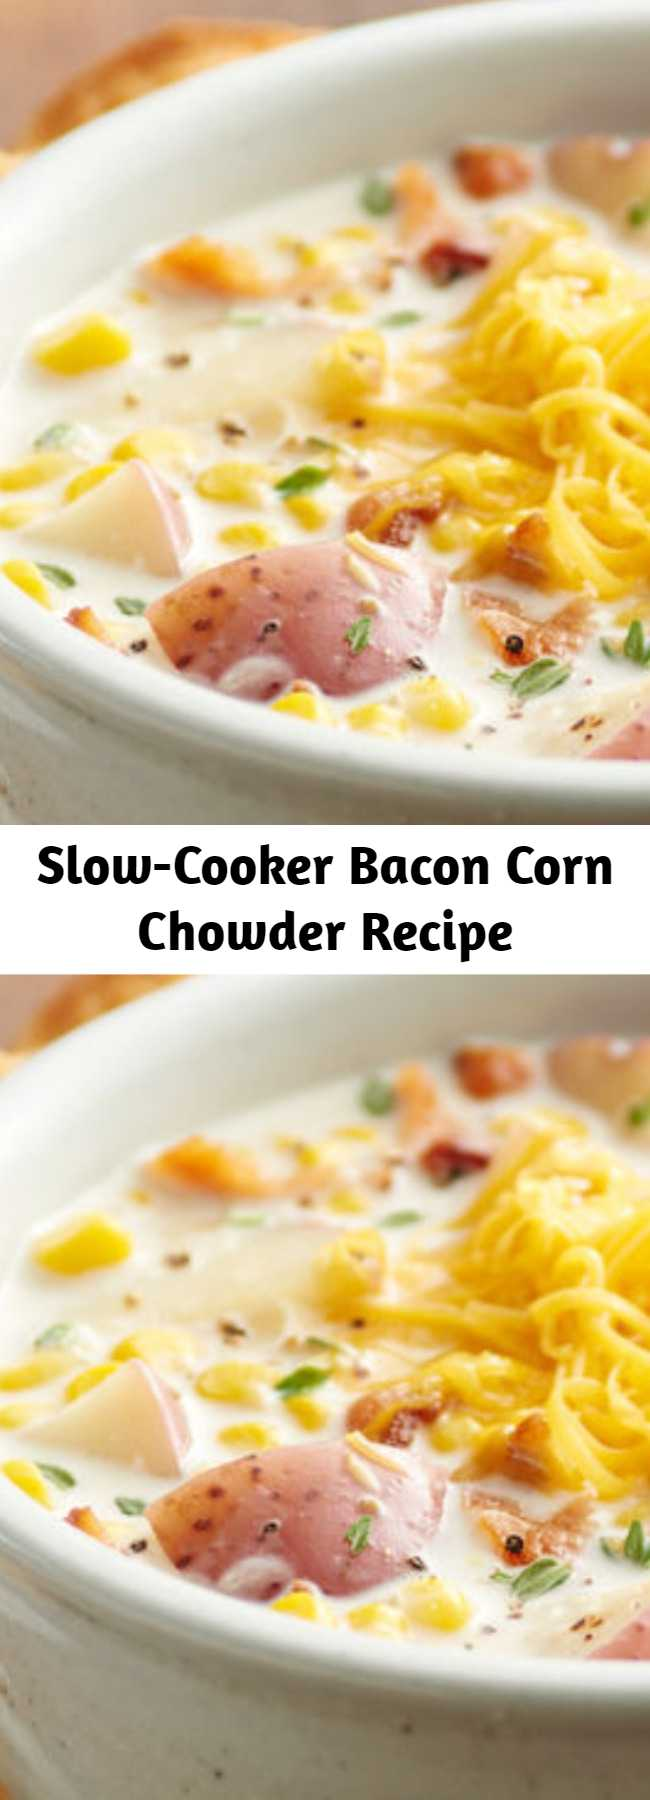 Slow-Cooker Bacon Corn Chowder Recipe - Hearty and creamy, this classic corn and potato soup gets extra oomph from our favorite ingredient—bacon. It only takes a few minutes to pull together, and then the slow cooker will do all the work.